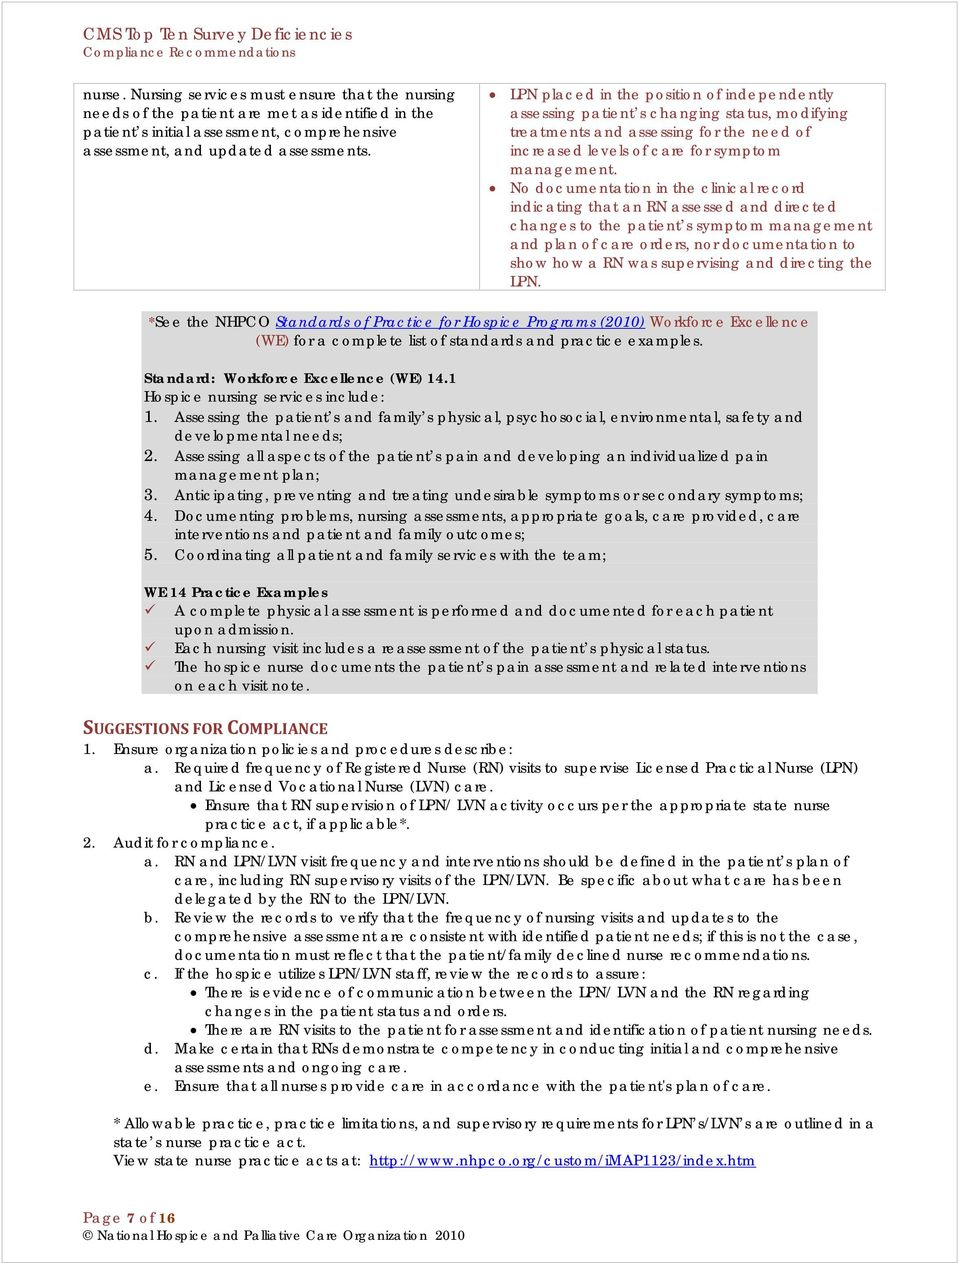 No documentation in the clinical record indicating that an RN assessed and directed changes to the patient s symptom management and plan of care orders, nor documentation to show how a RN was